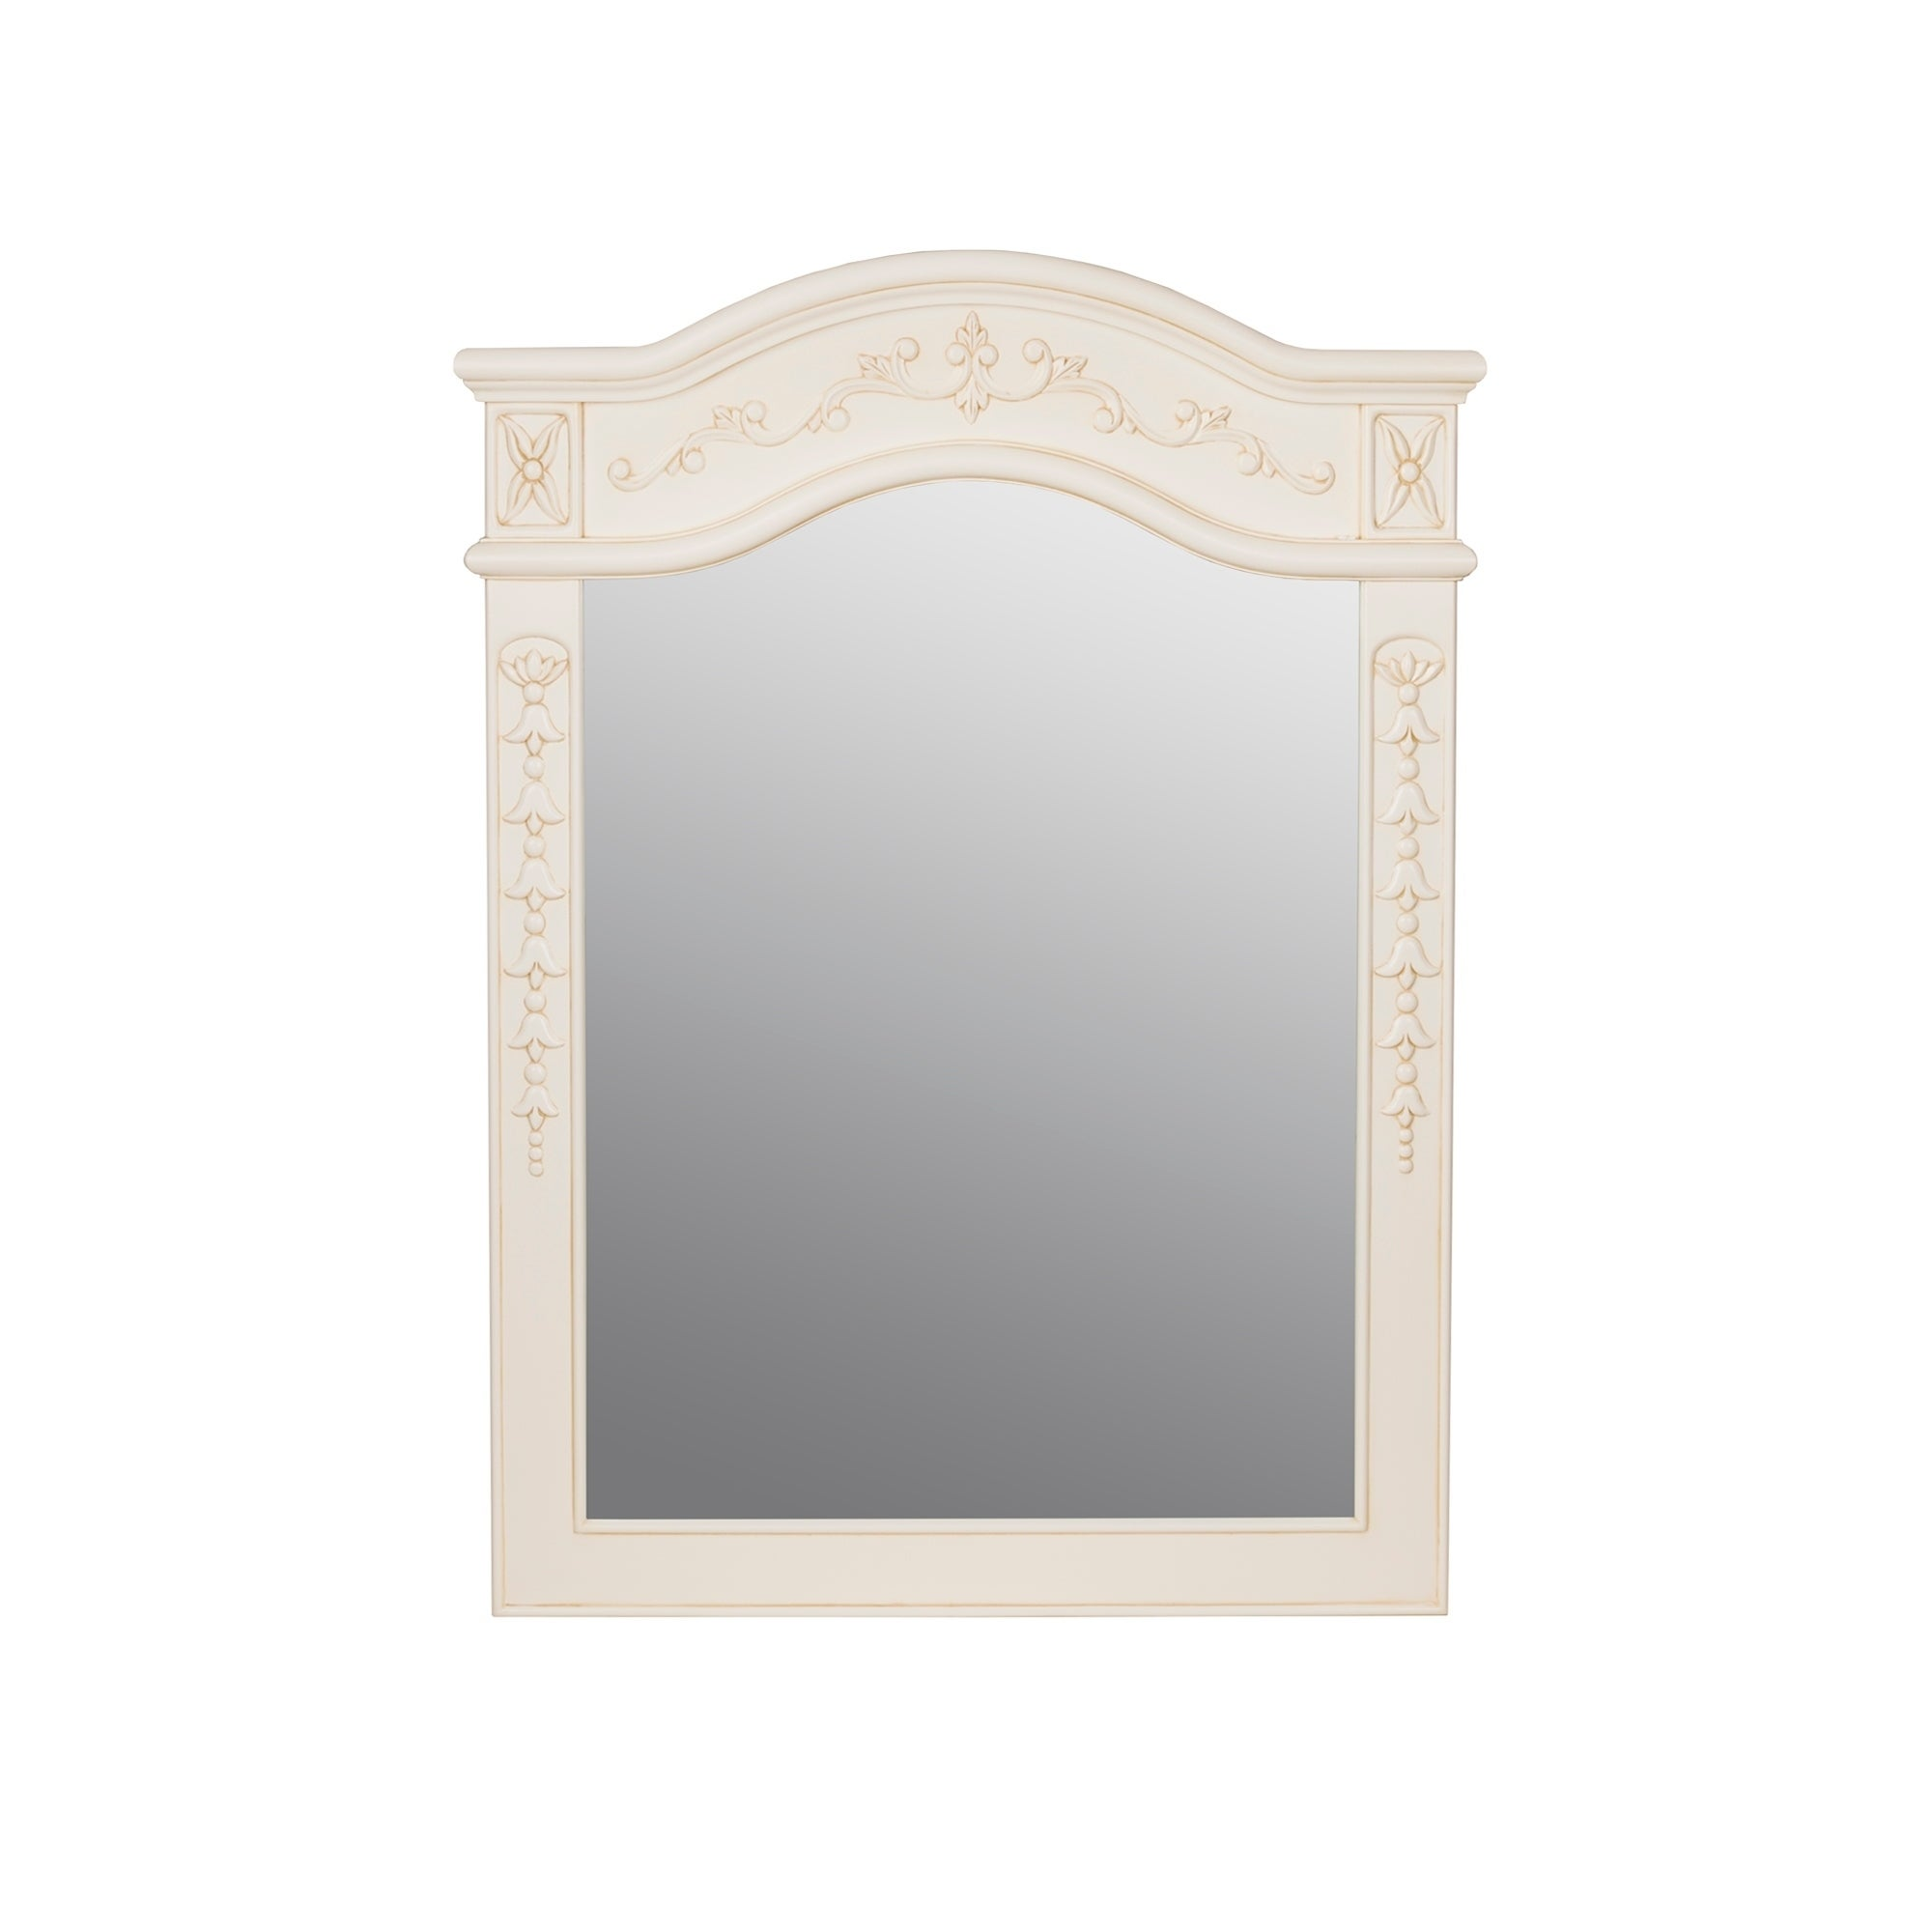 Shop Ronbow Bordeaux Antique White Wood Framed 24-inch x 34-inch ...